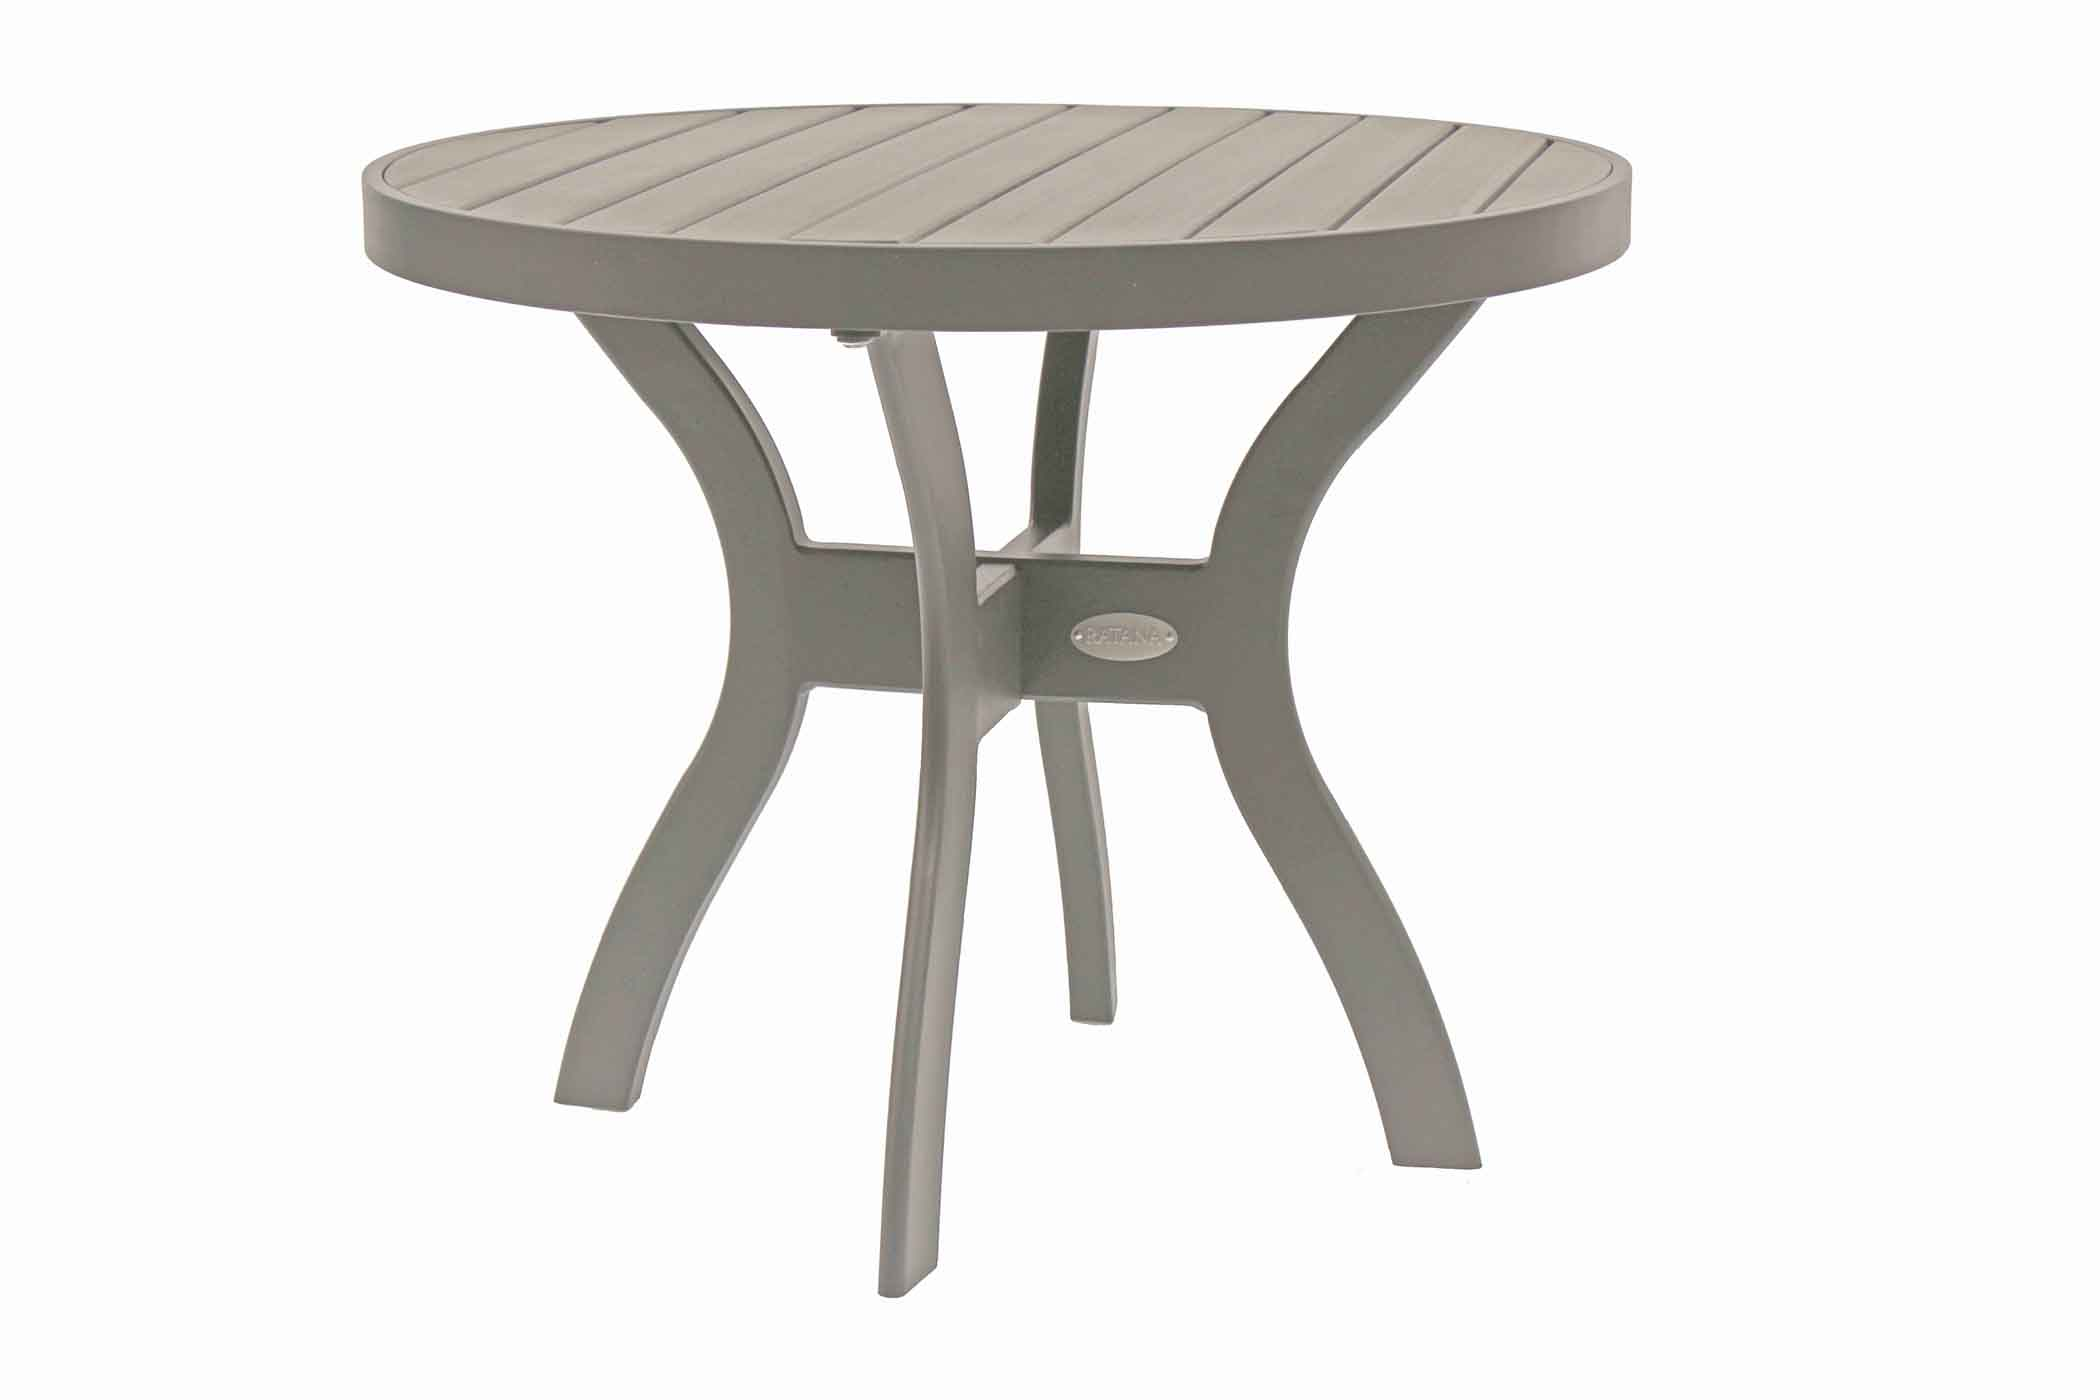 Pisa 20 Rd Lounger Side Table w-Durawood Top (SR)